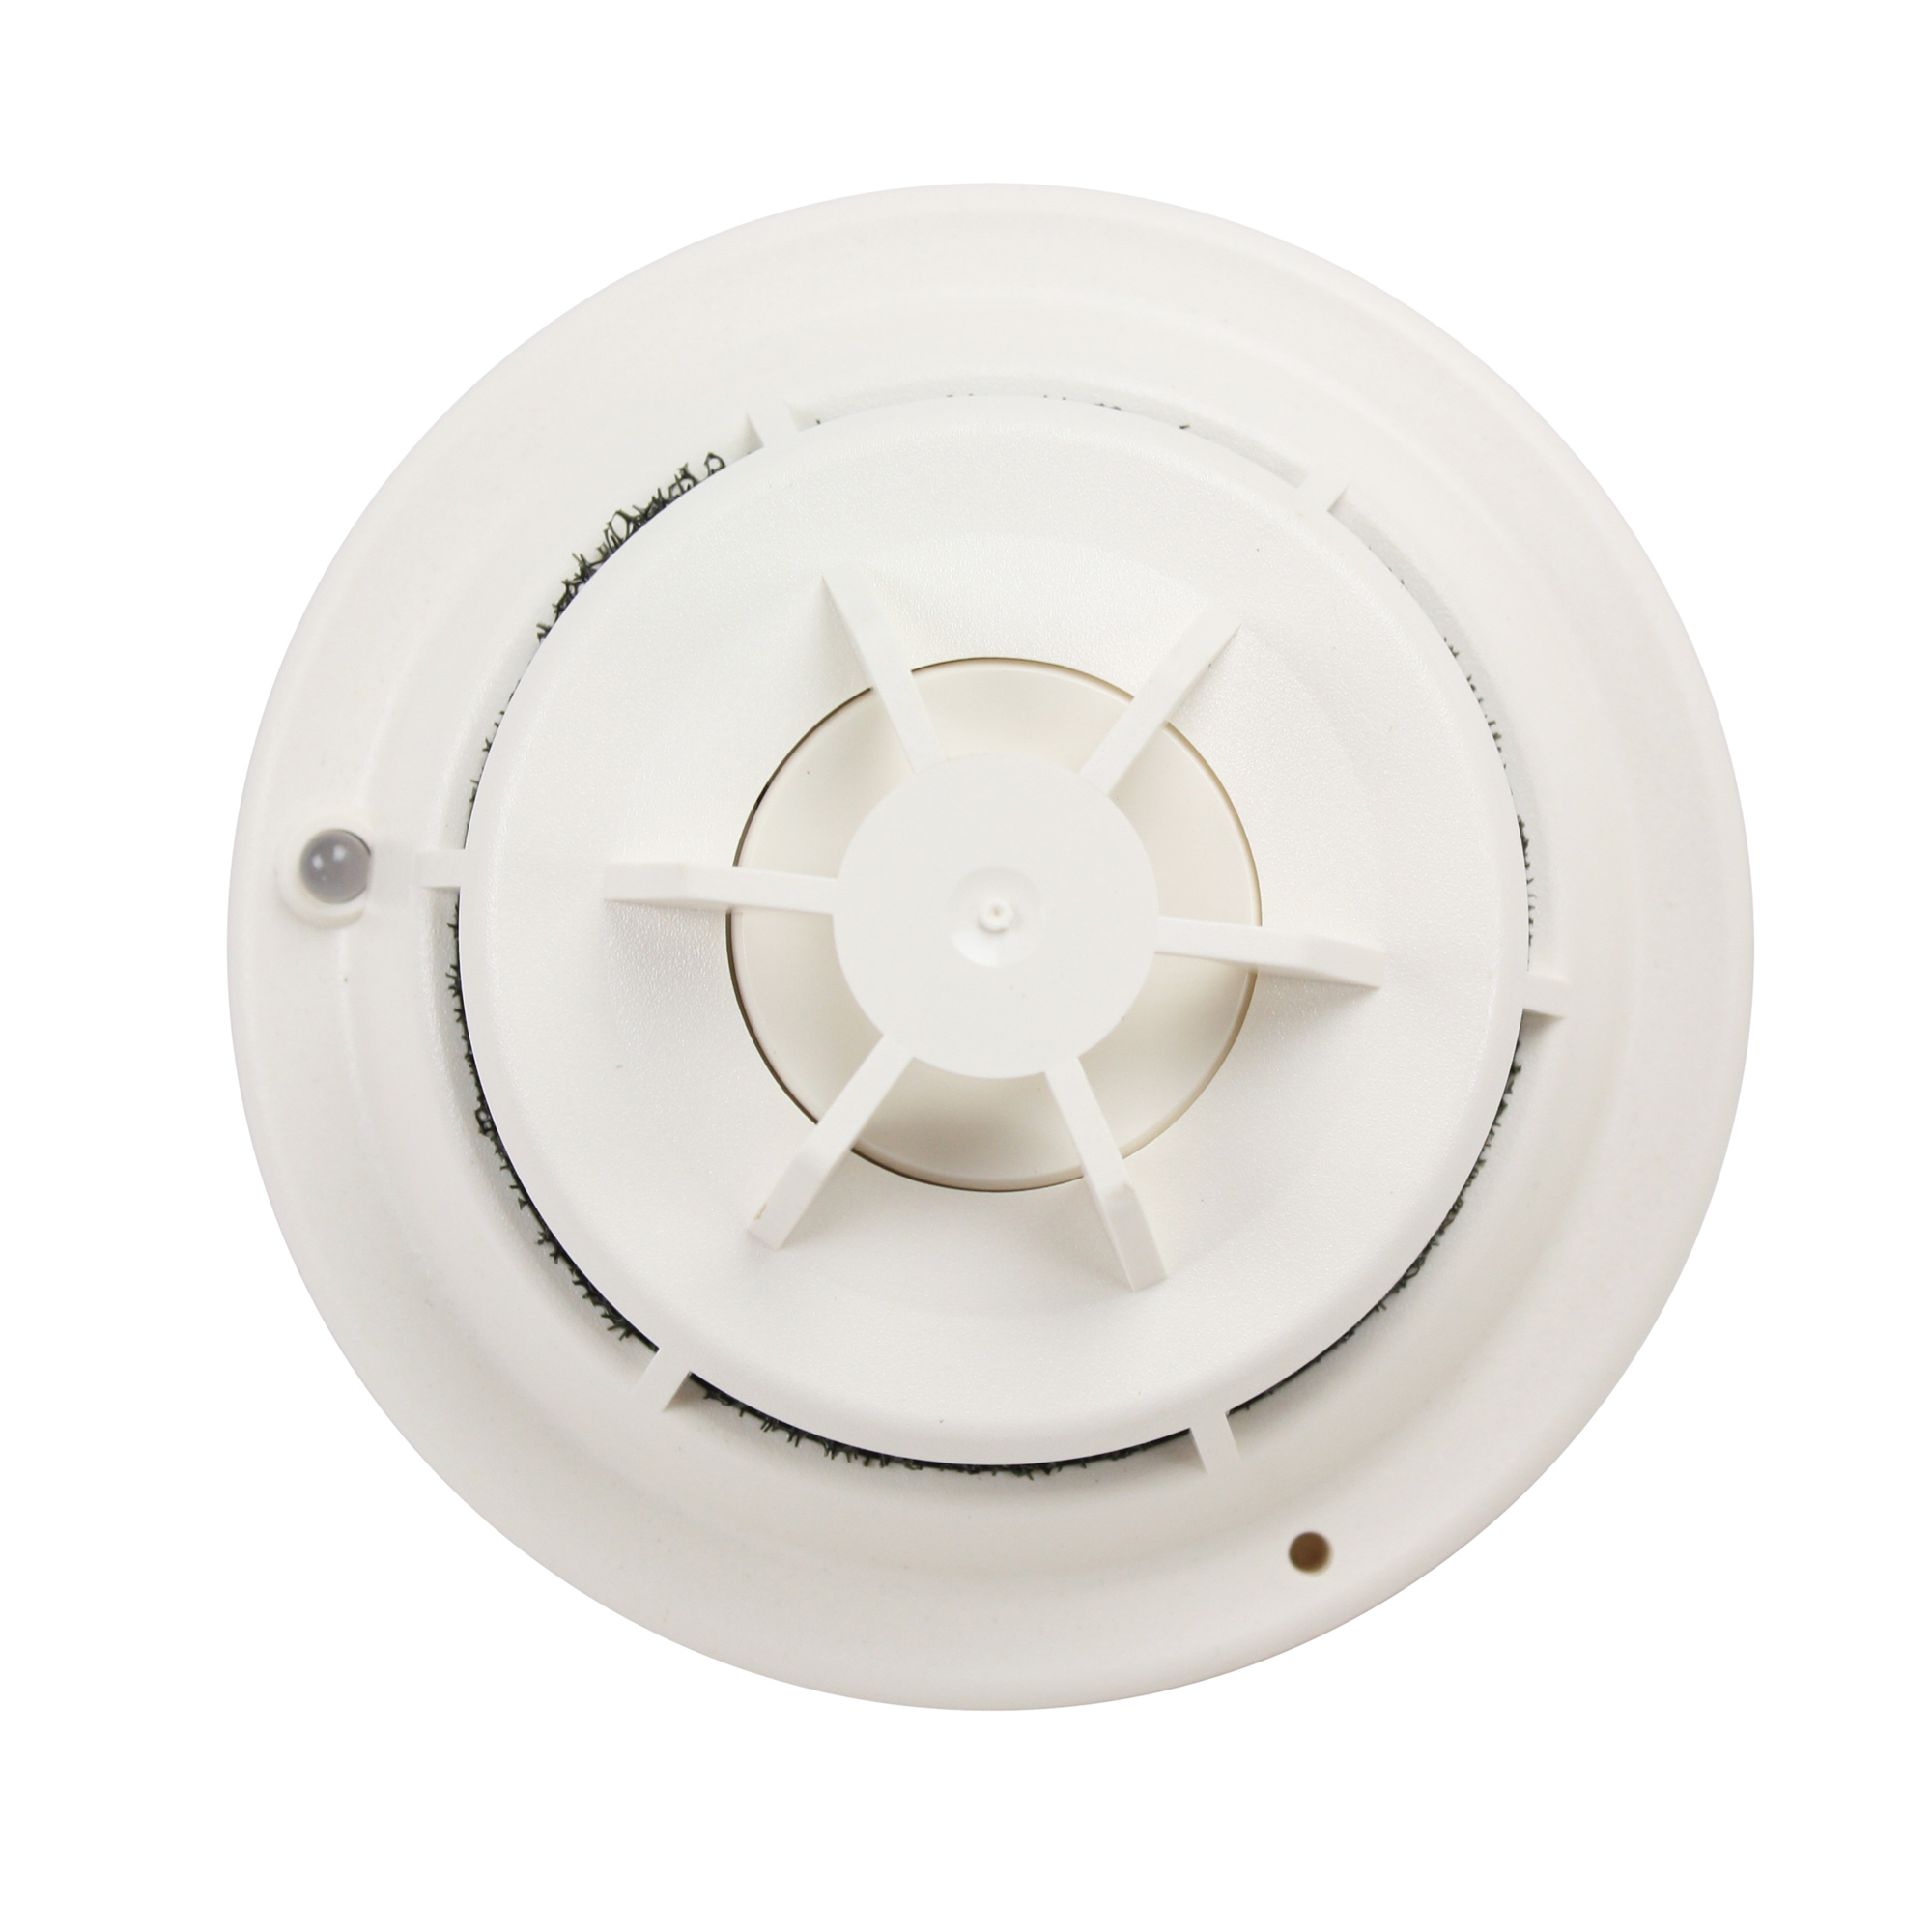 hight resolution of siemens hfp 11 500 033290 fire alarm addressable fireprint smoke detector walmart com